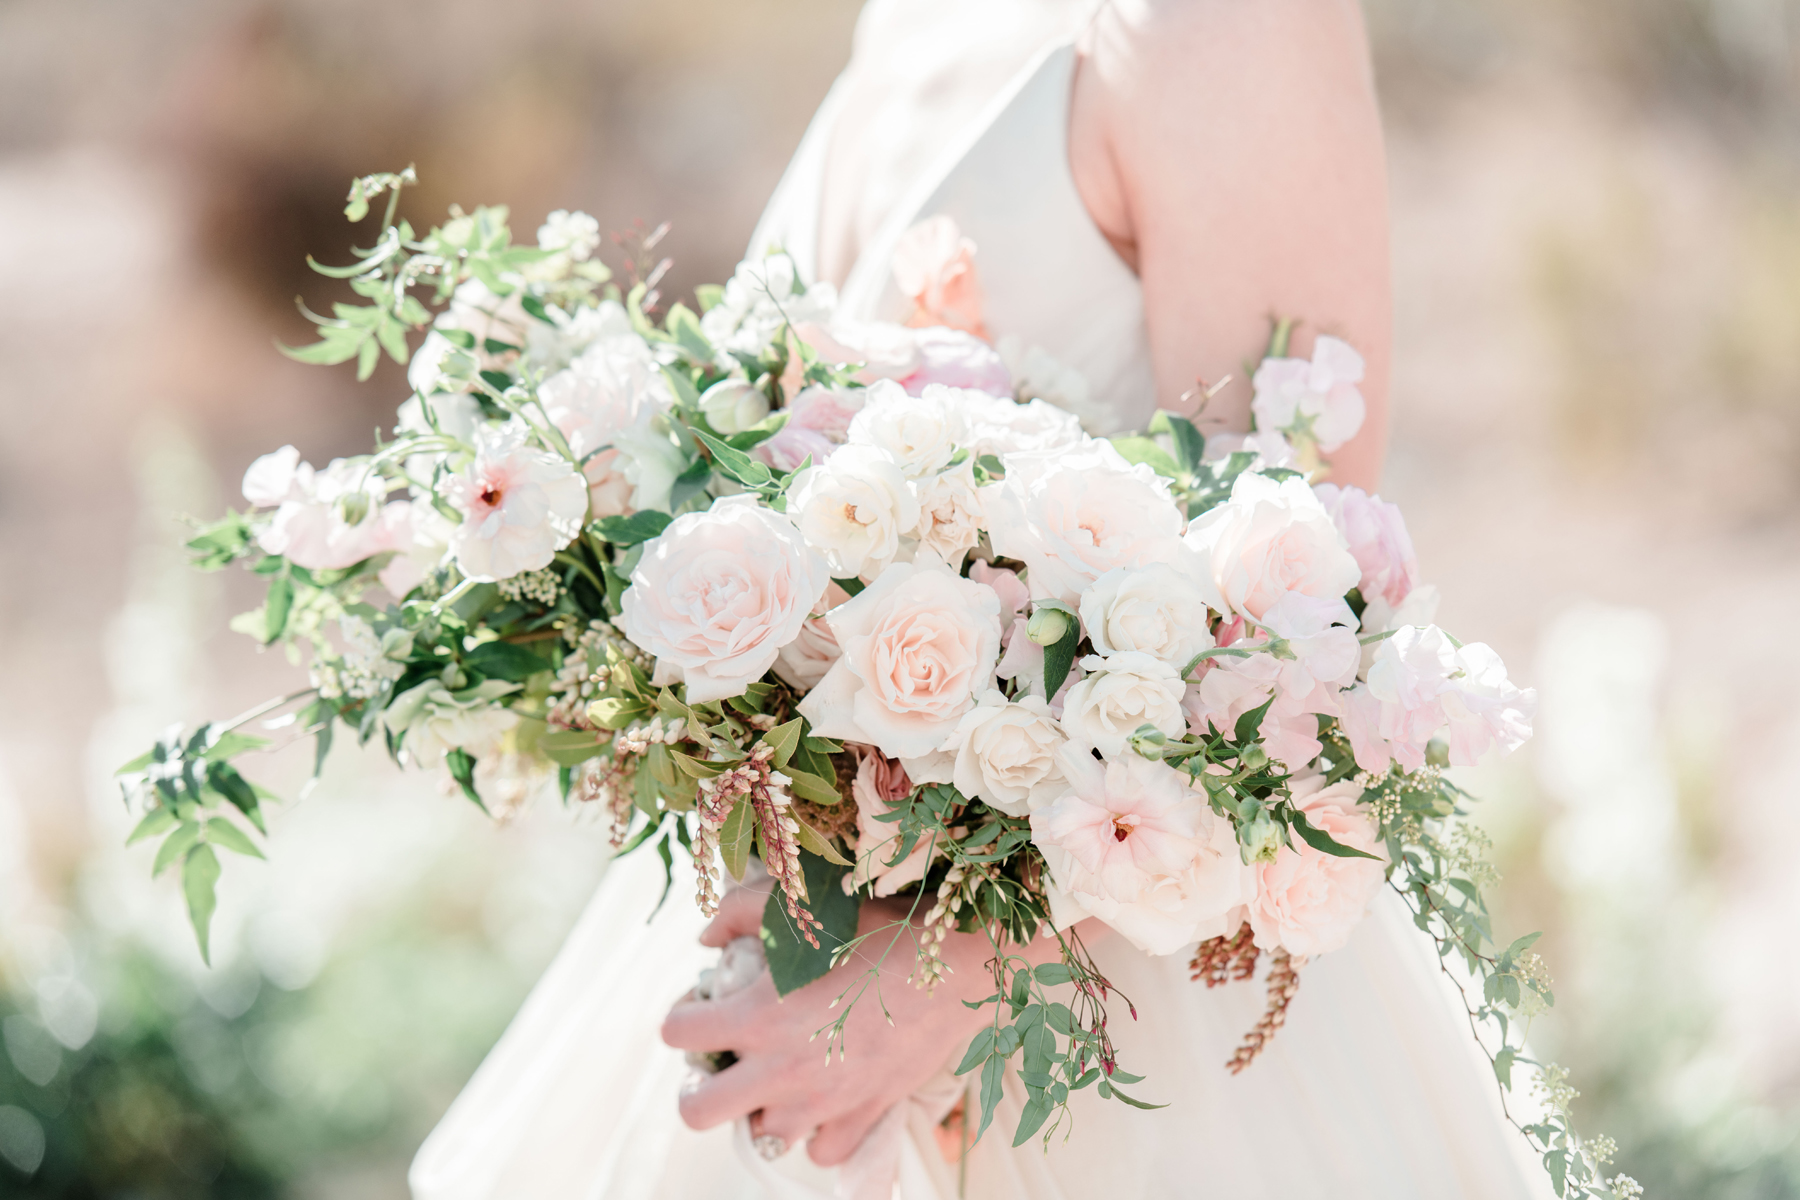 Elegant Compote Bouquet in Blush